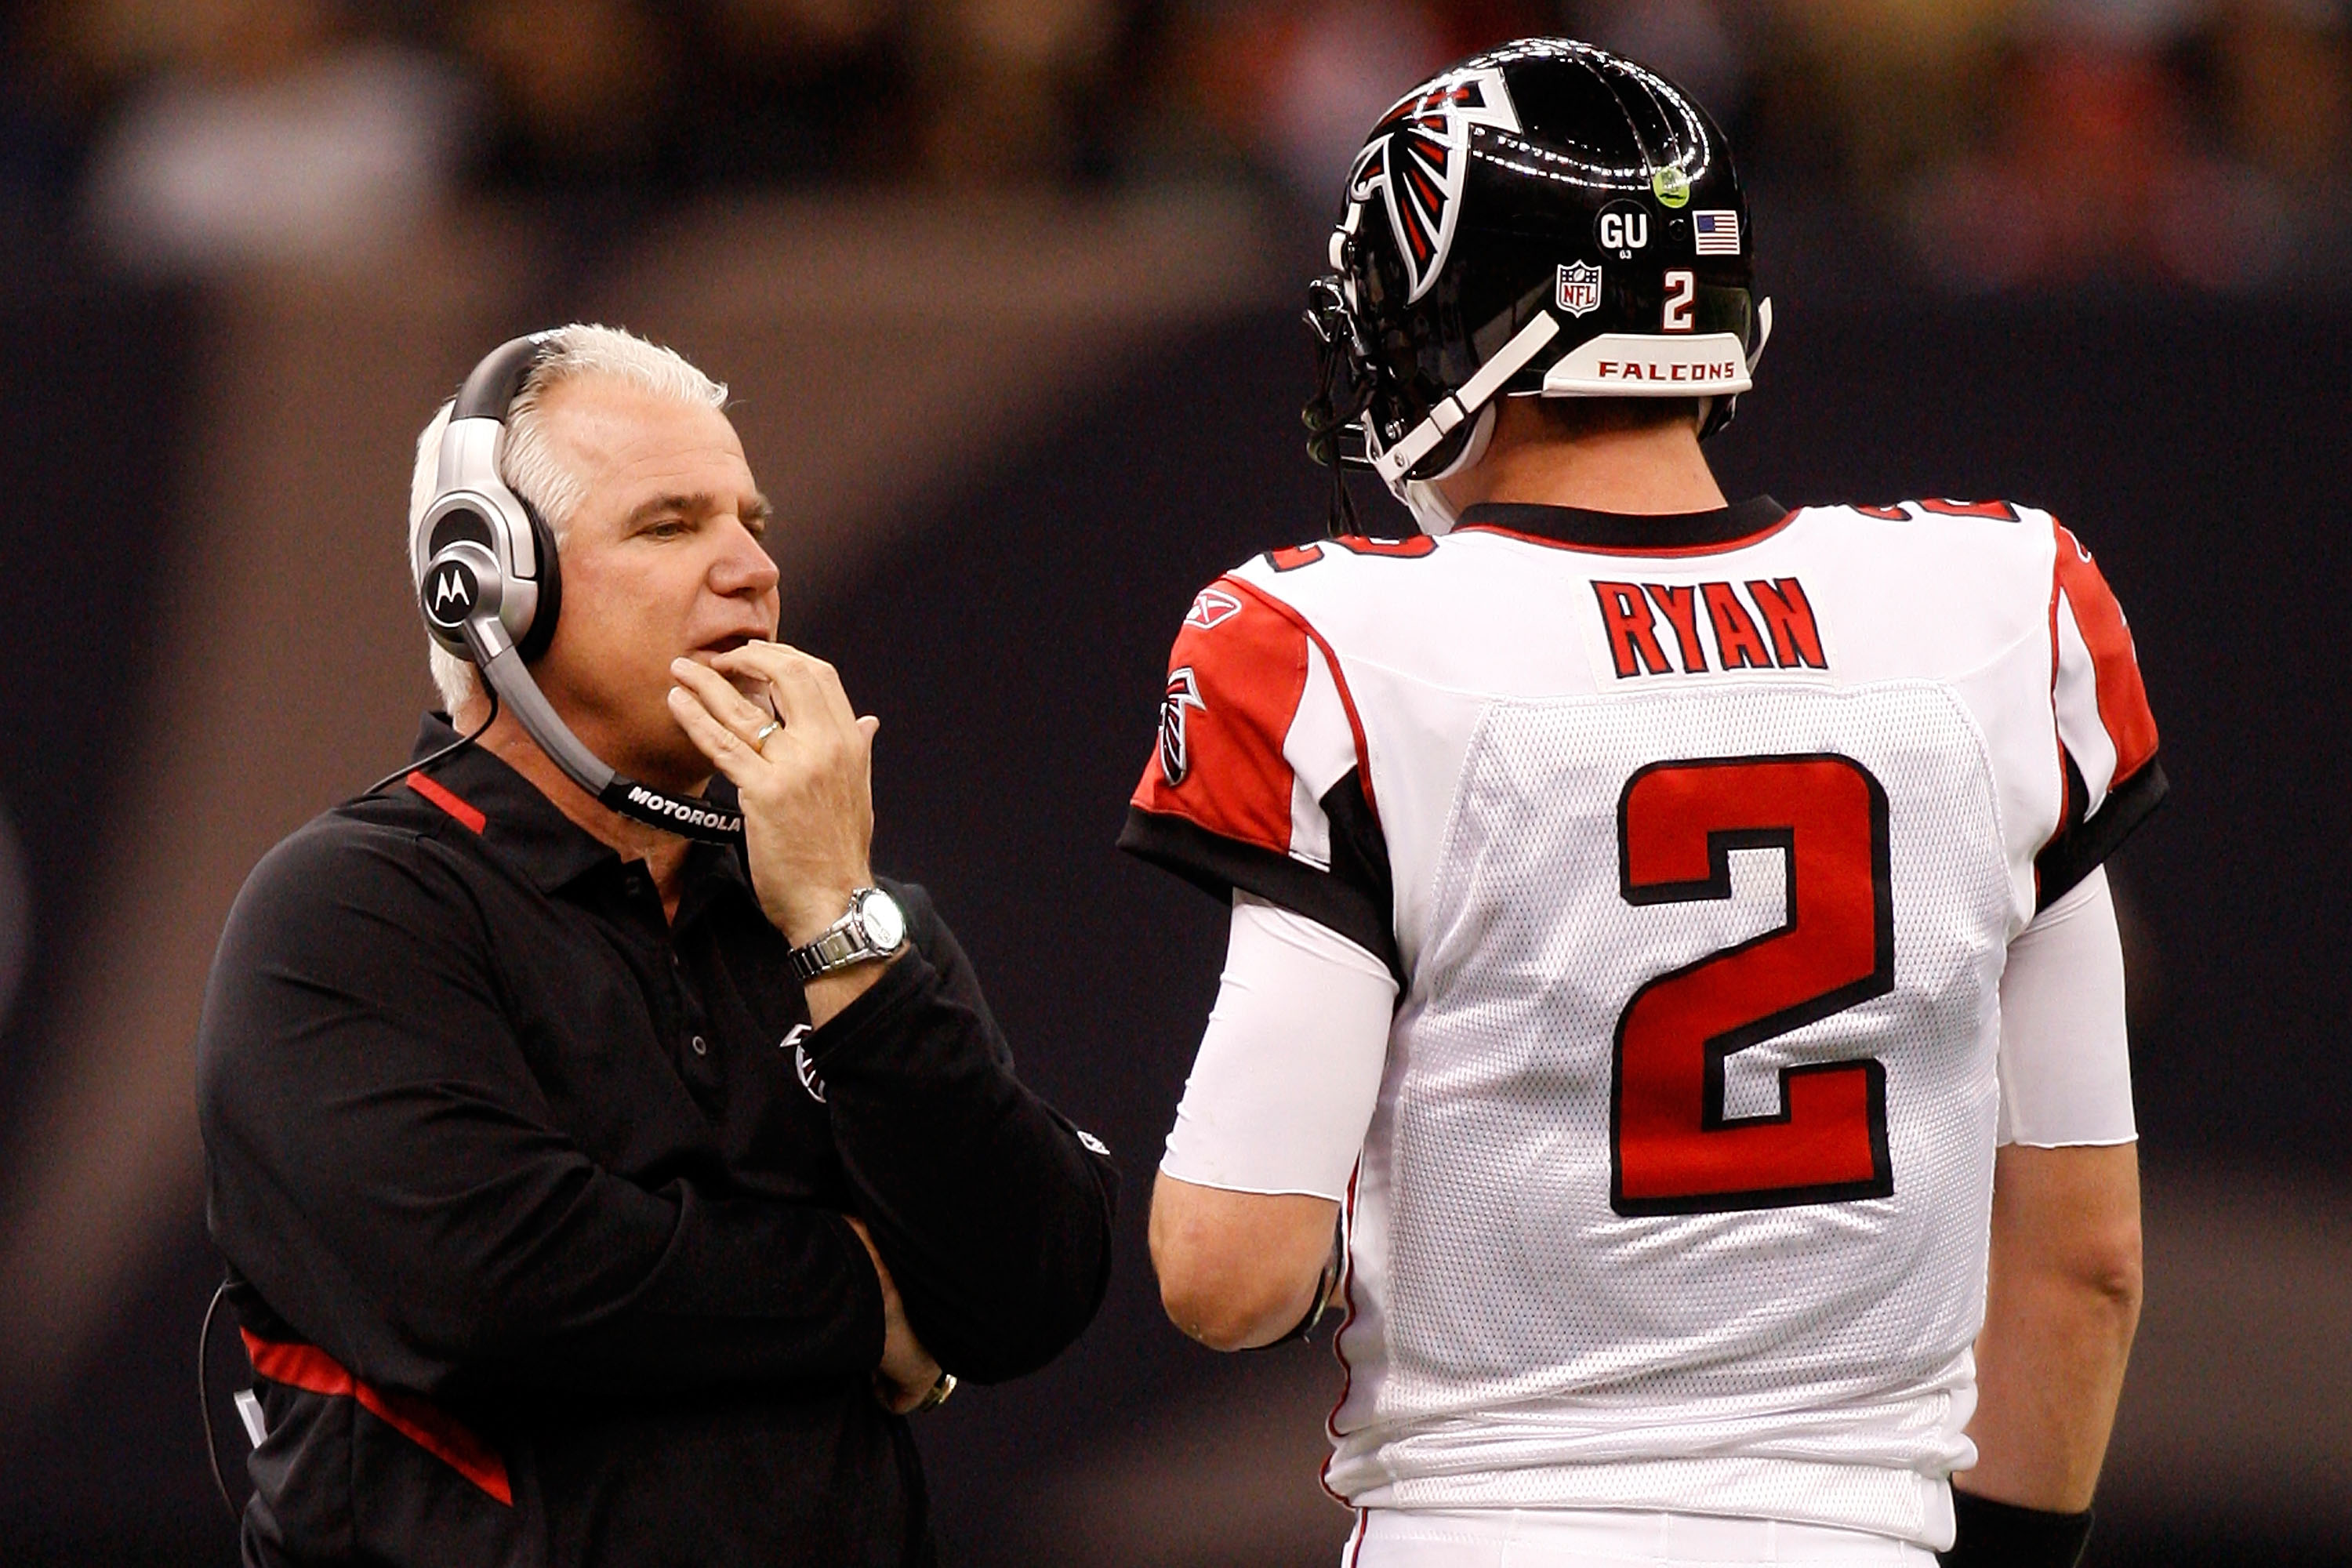 NEW ORLEANS - DECEMBER 07:  Head coach Mike Smith talks with quarterback Matt Ryan #2 of the Atlanta Falcons throws a pass against the New Orleans Saints on December 7, 2008 at the Superdome in New Orleans, Louisiana.   The Saints defeated the Falcons 29-